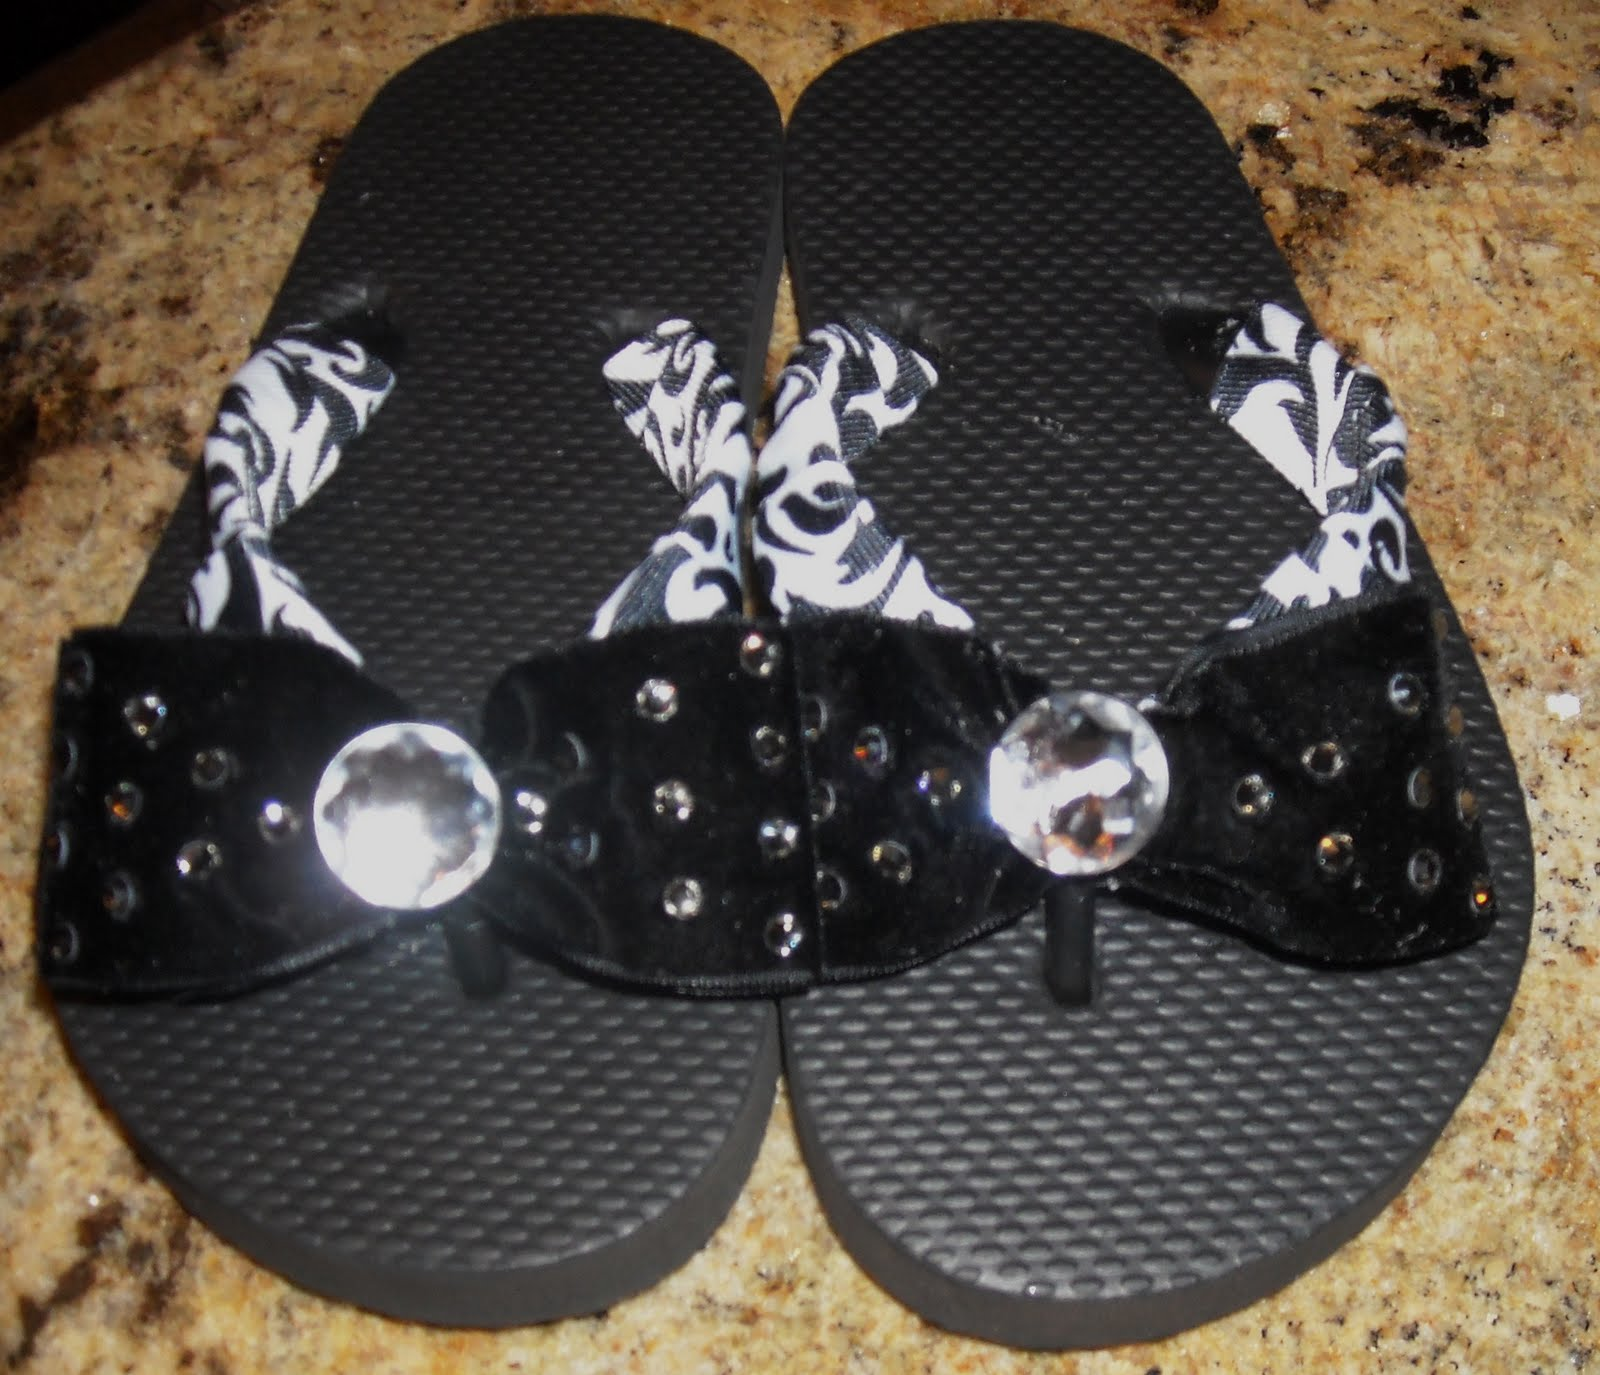 Extreme Domestication: New Flip Flop Designs